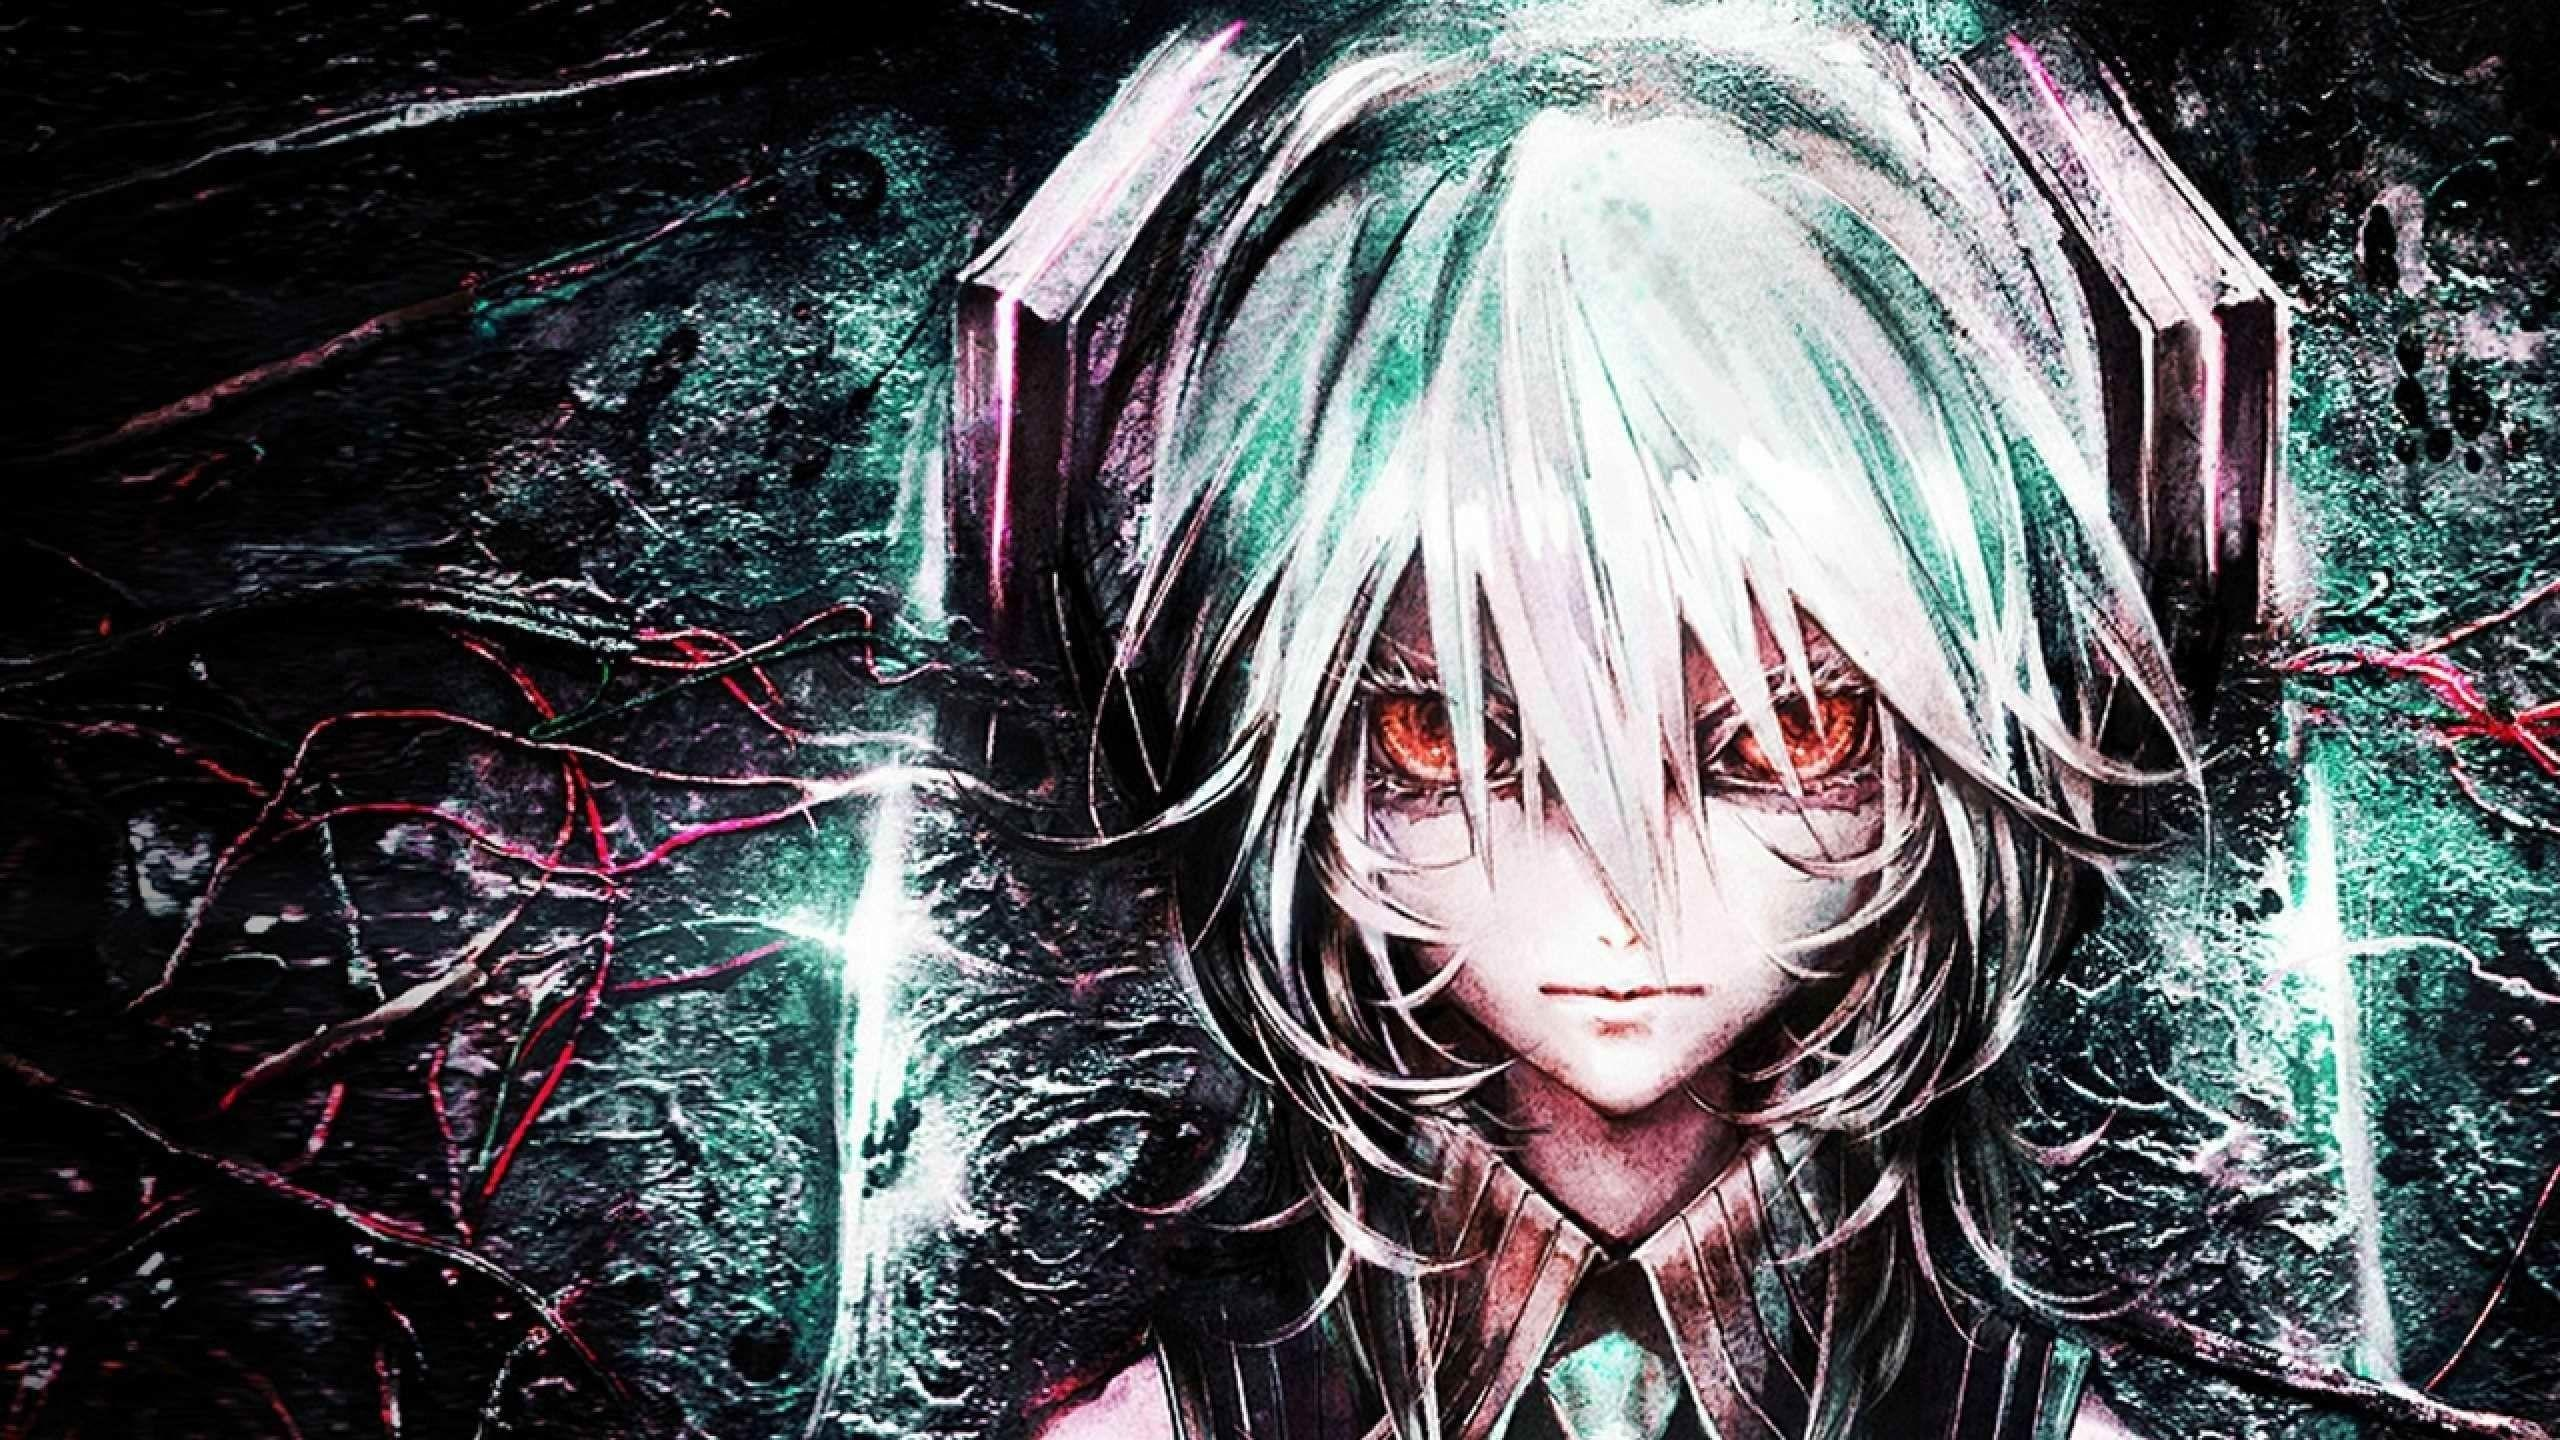 nightcore wallpapers | Posters n Pics